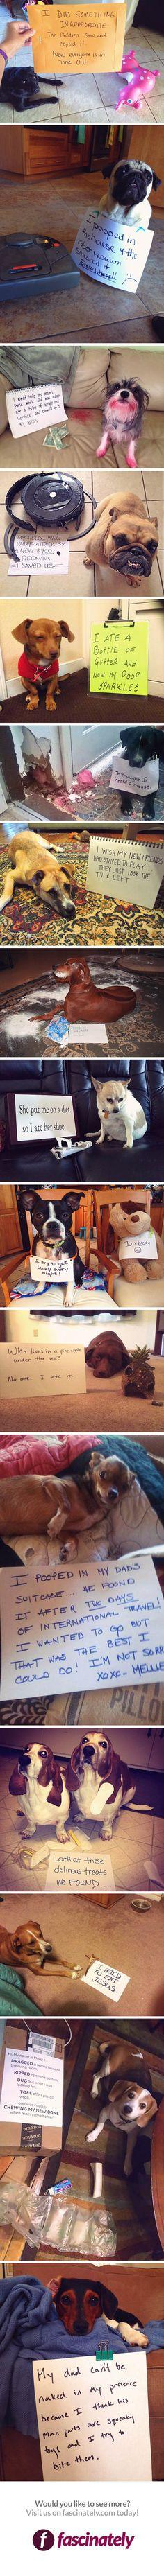 Naw!!!: Funny Pets, Naughtiest Dogs, Dogs Ear, Dog Shaming, Dogs Funny Humor, Funny Dogs, Bad Dog, Funny Animal, Naughty Dogs